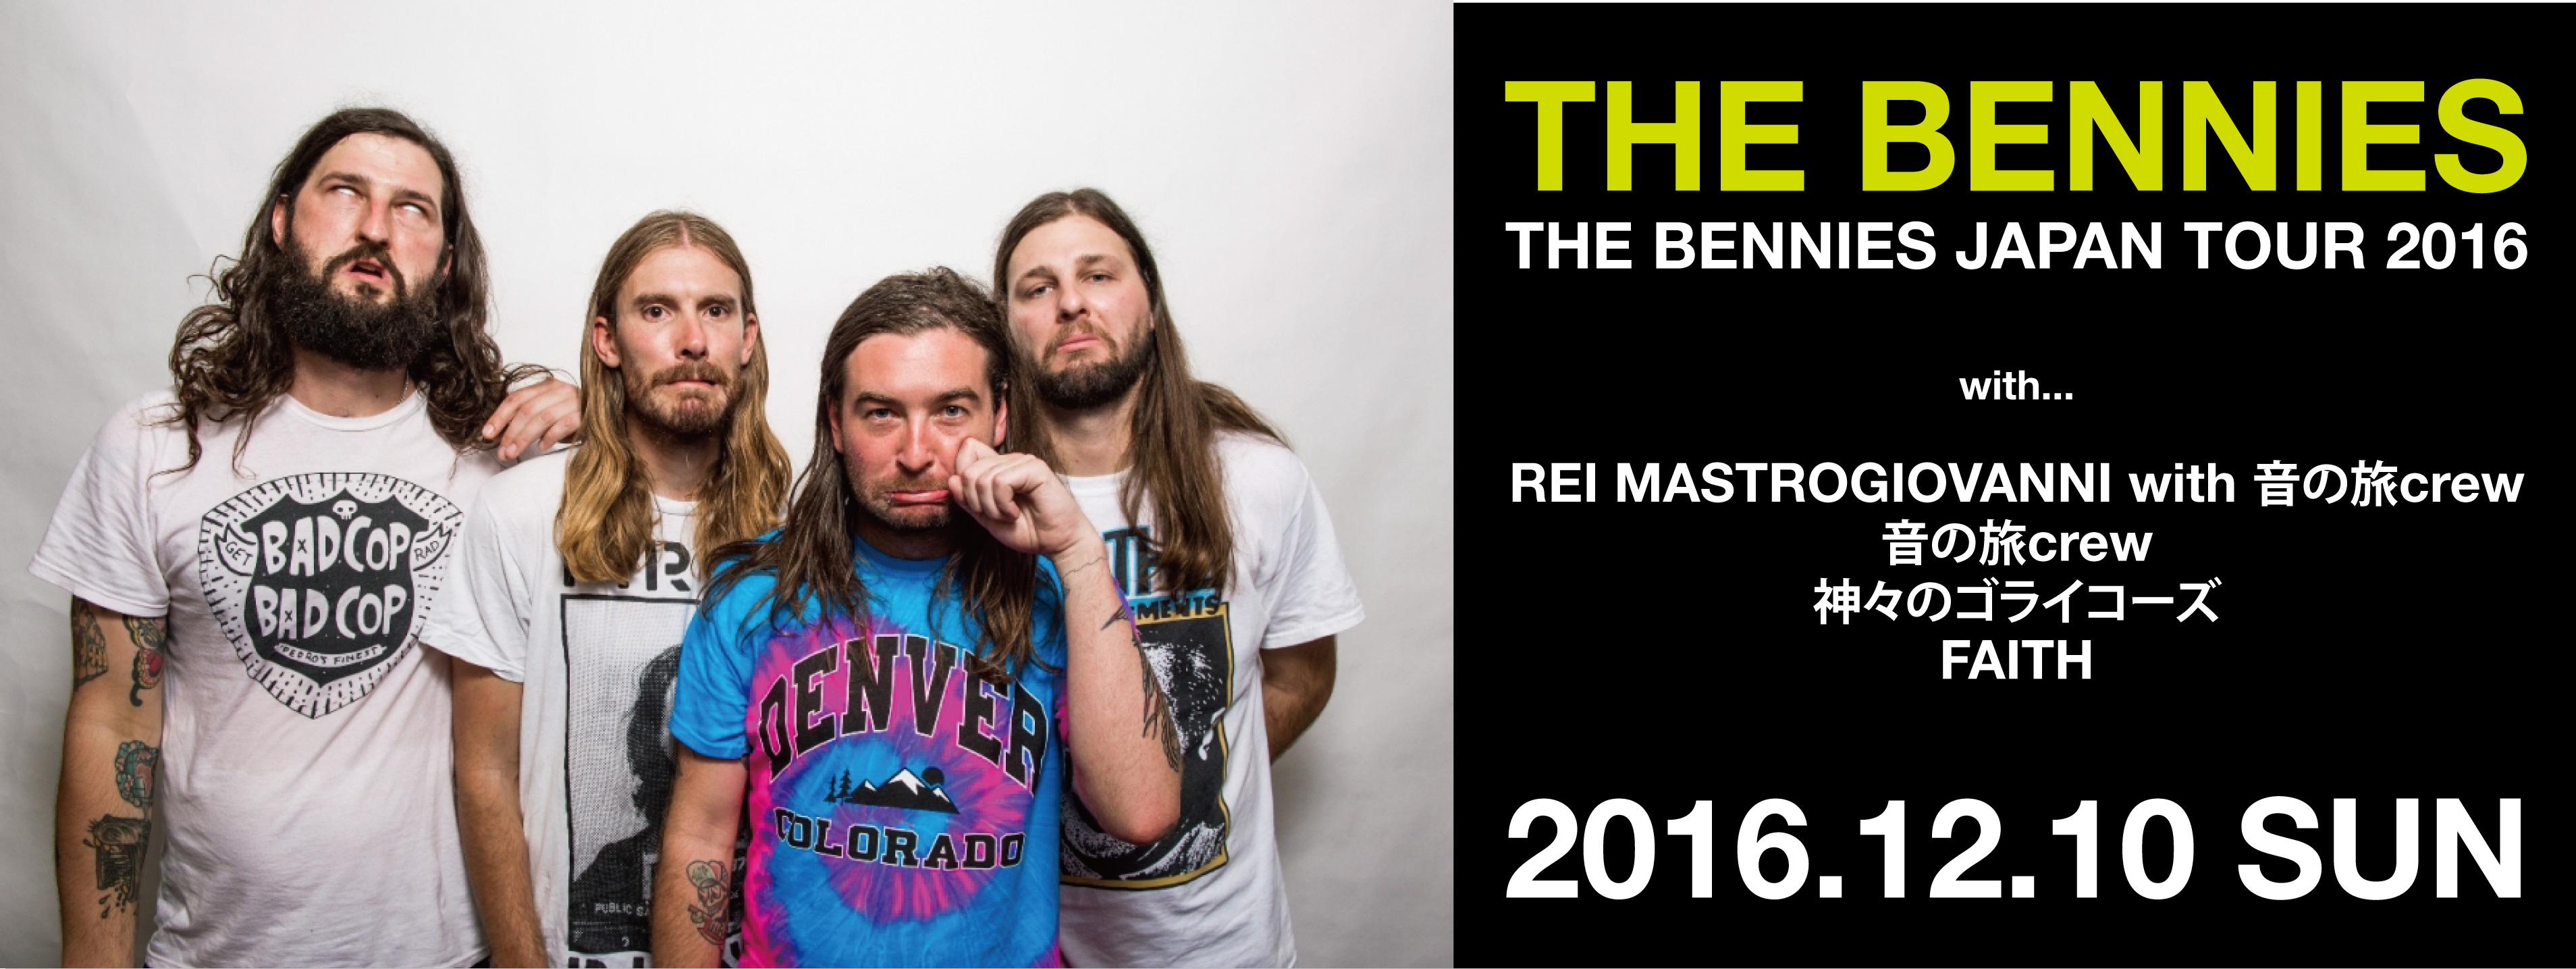 THE BENNIES JAPAN TOUR 2016